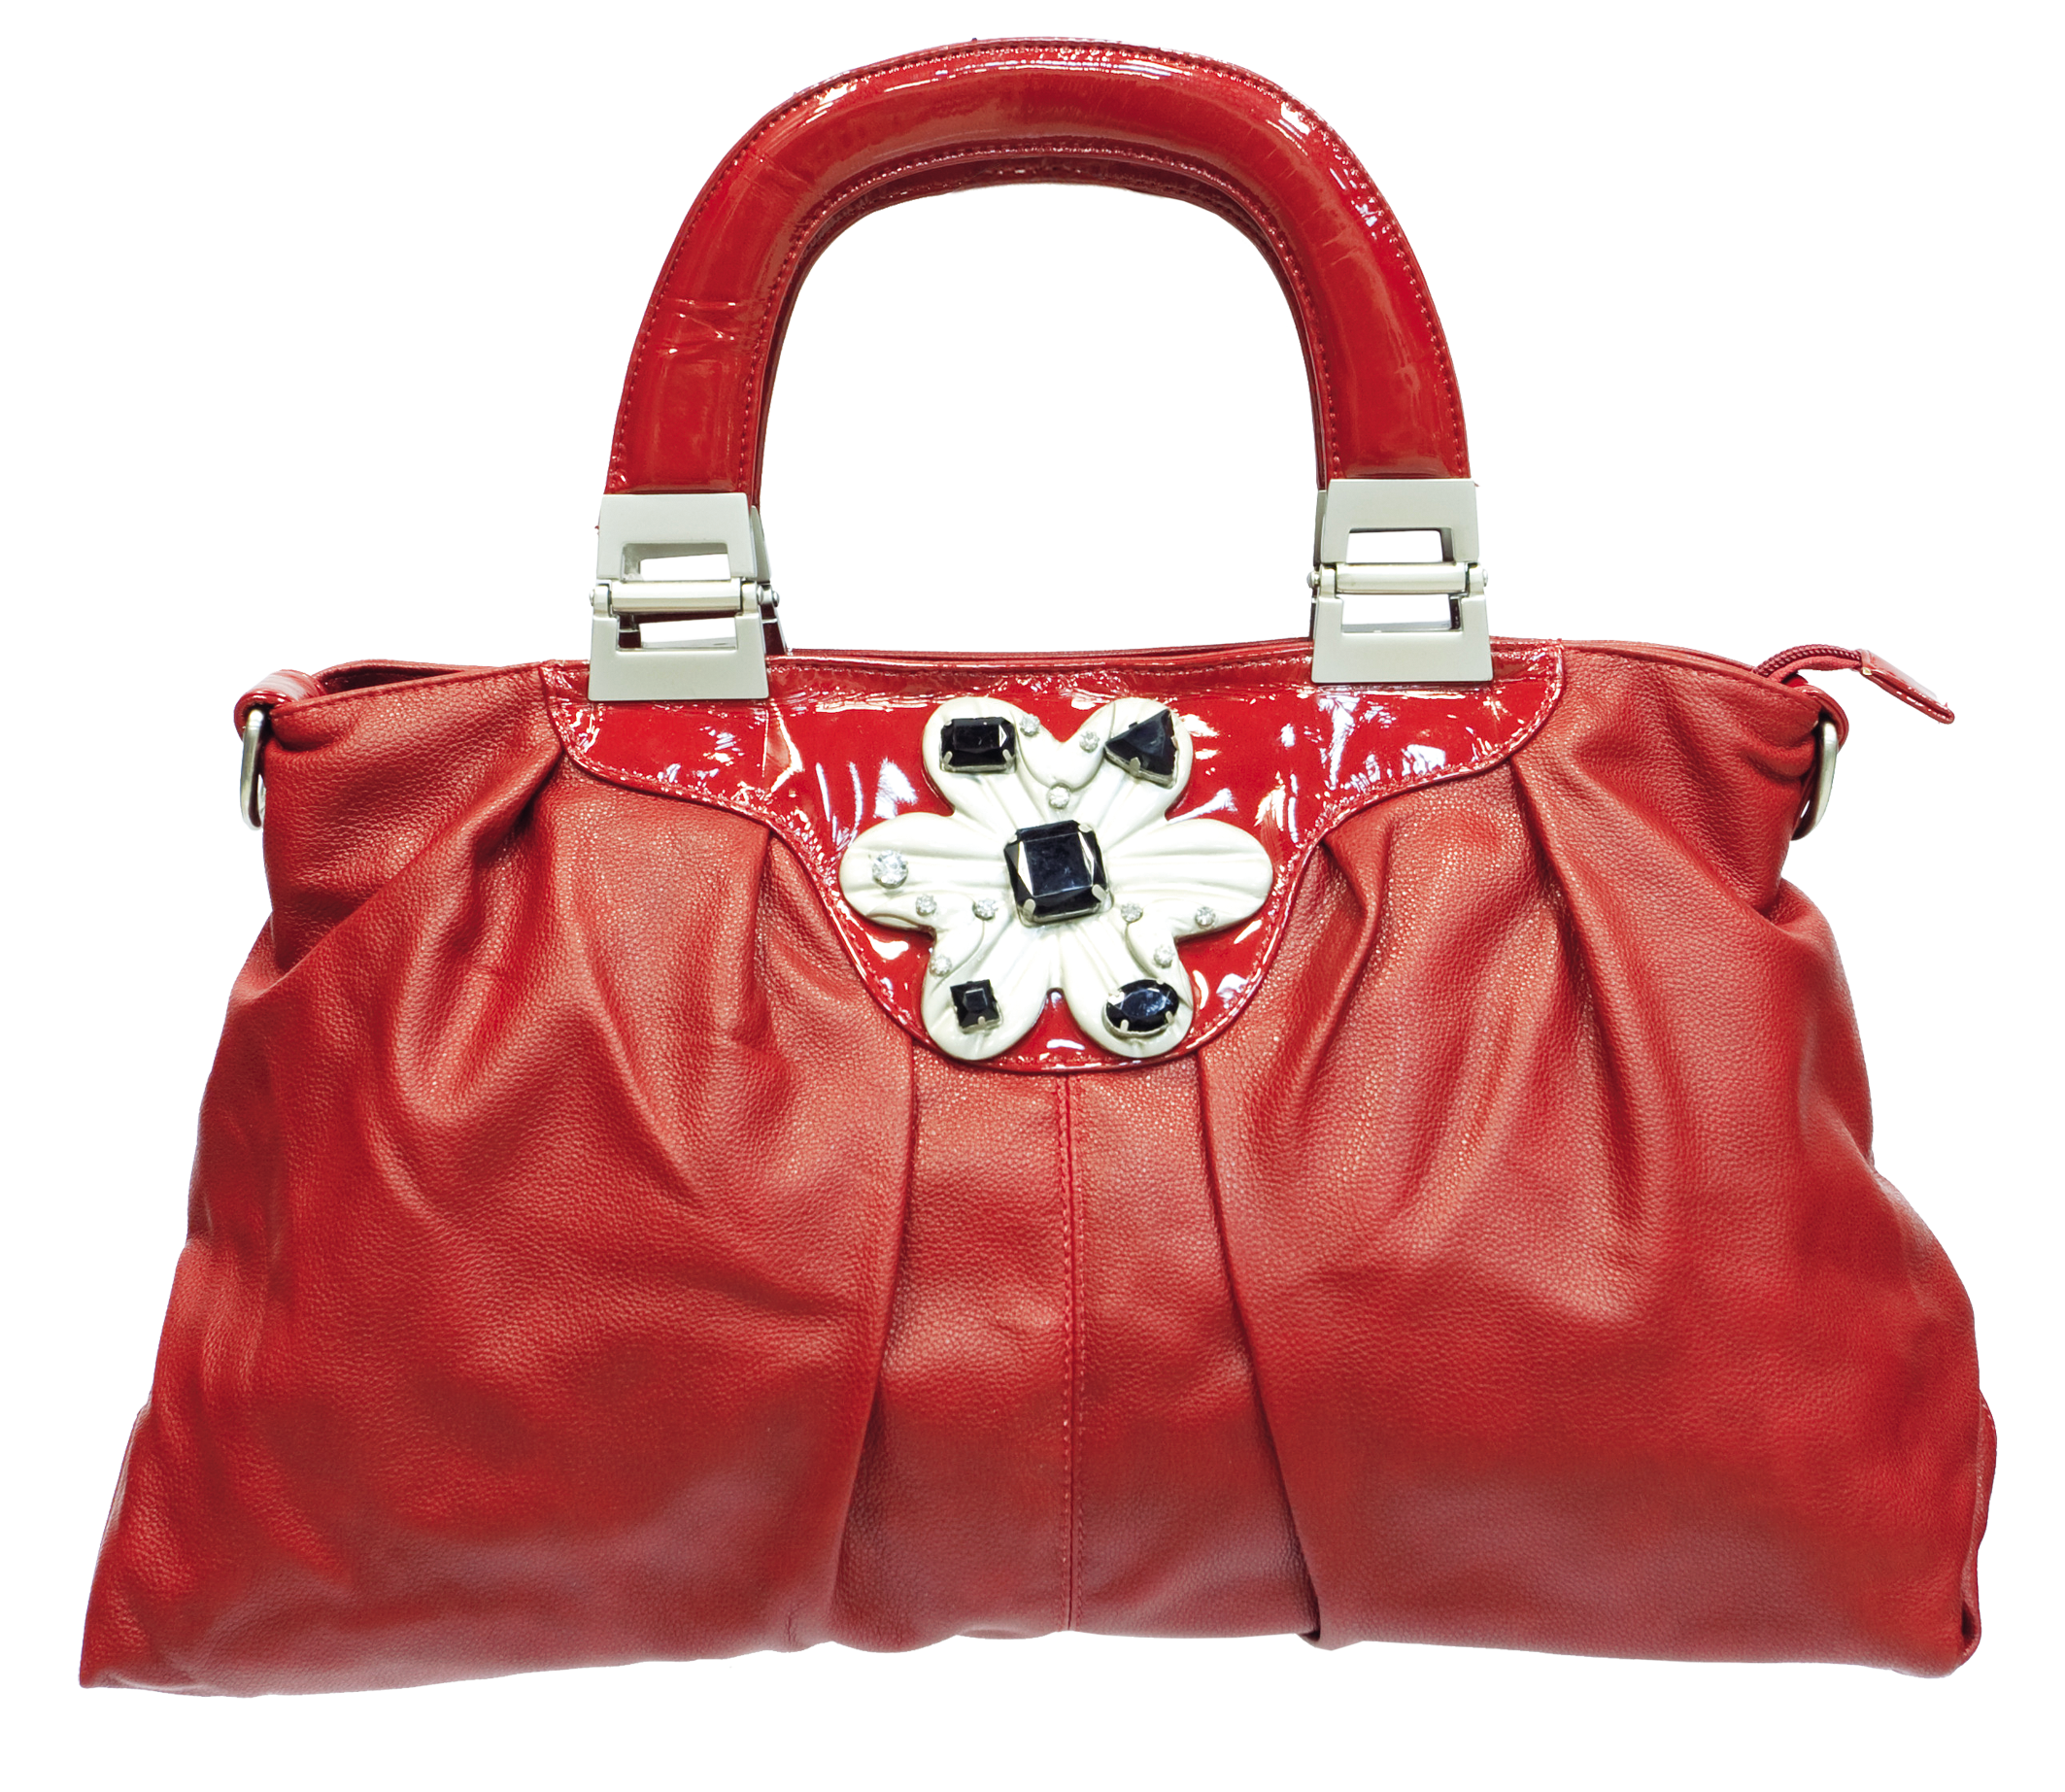 Red Women Bag Png Image Trendy Purses Bags Red Leather Bag